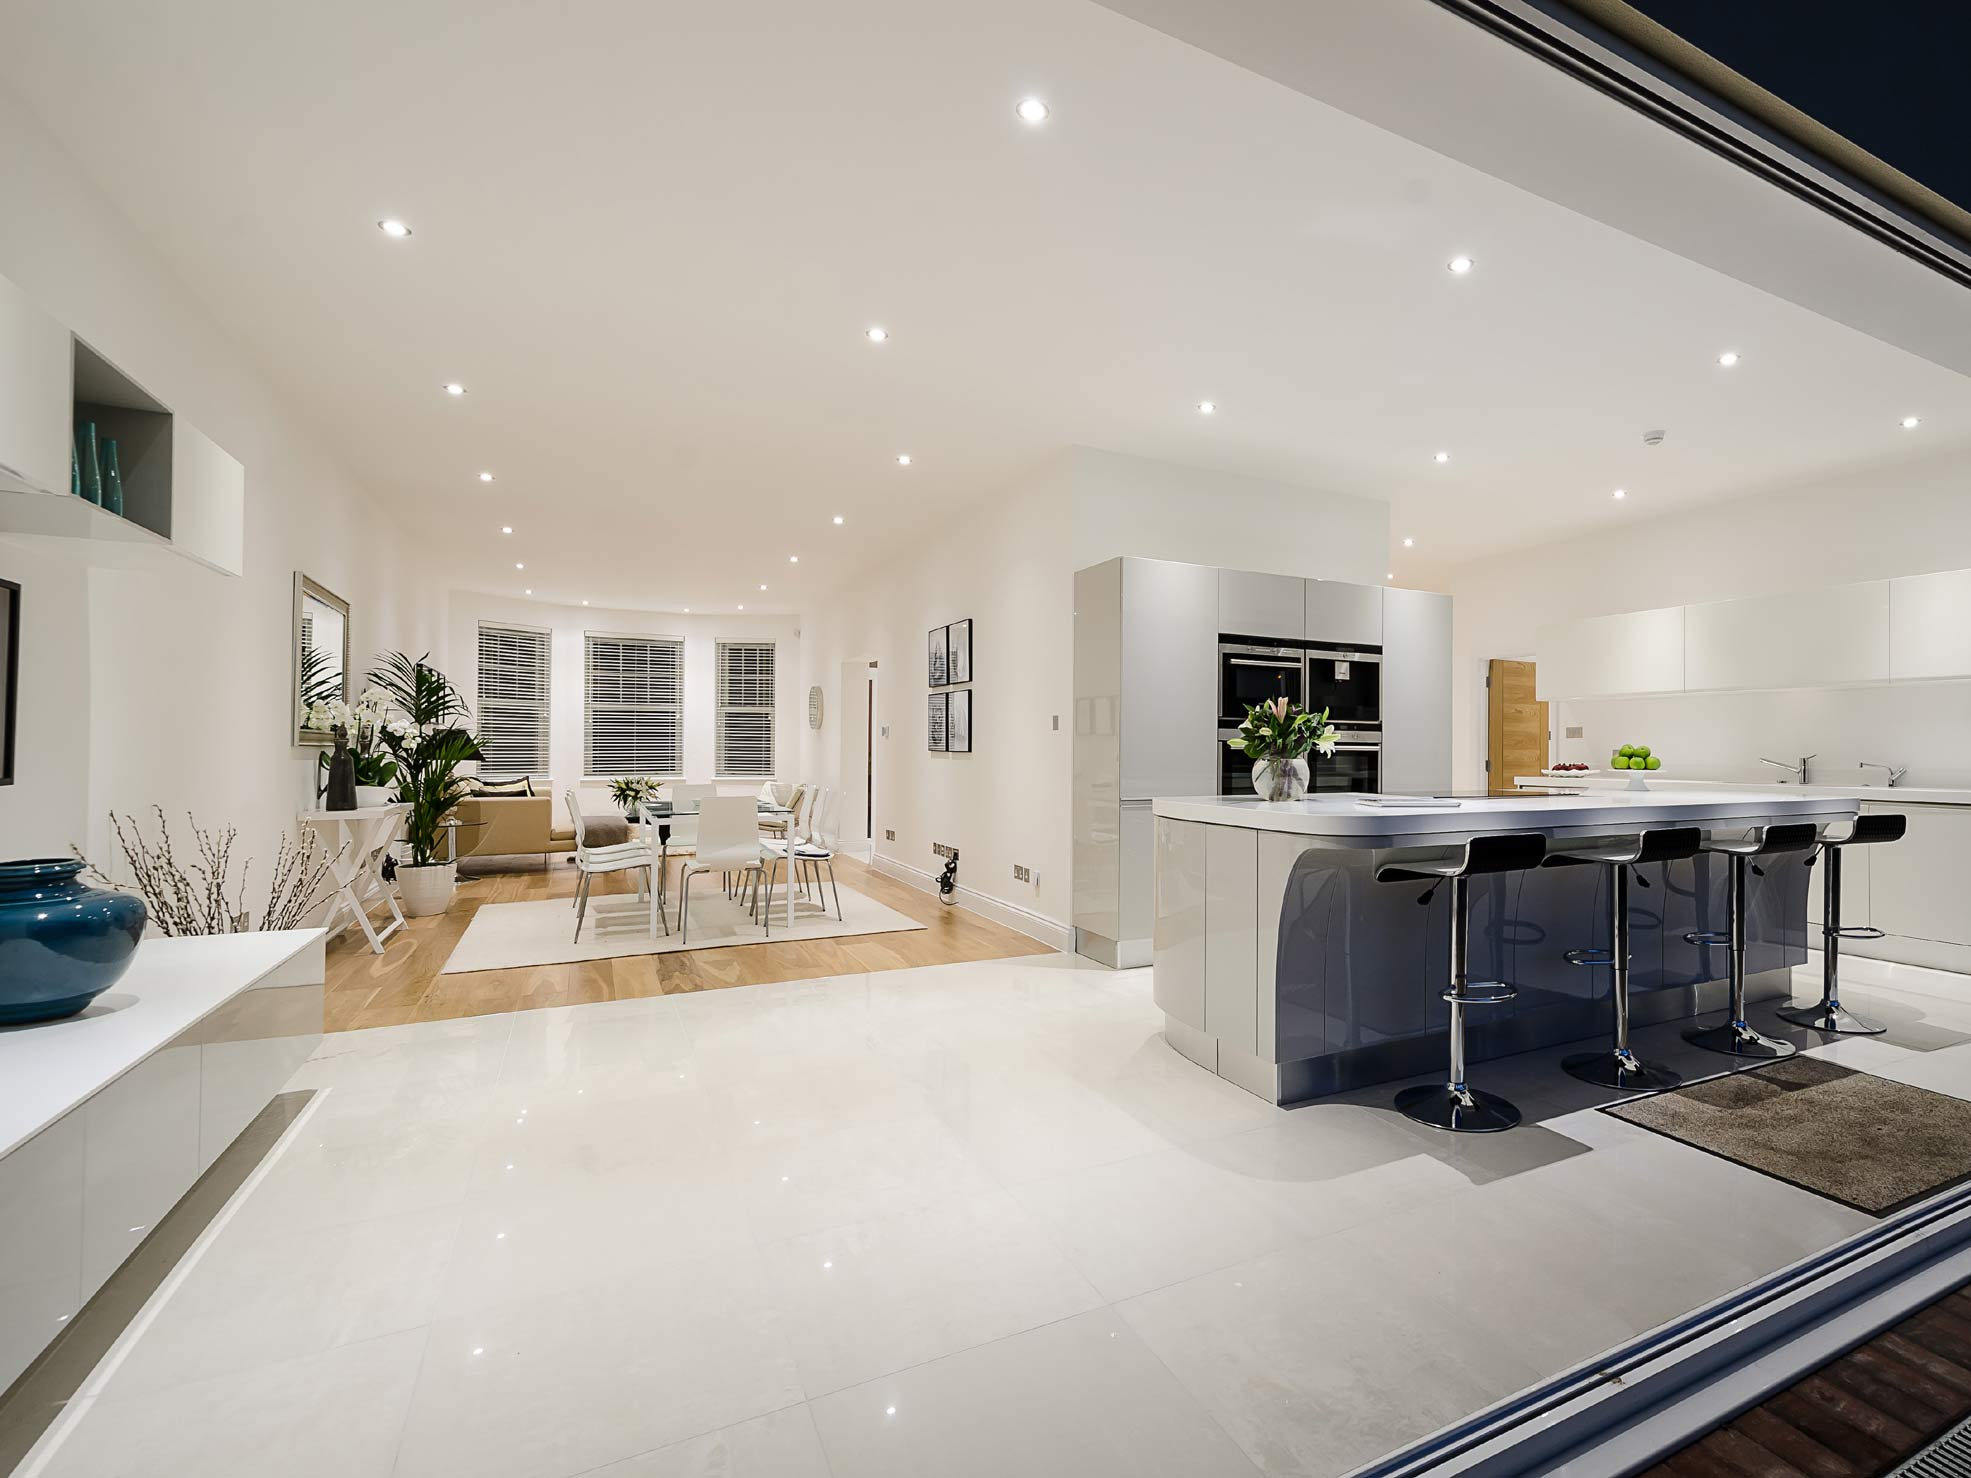 Garage Conversion Hertfordshire The Tlc Group London Essex And Hertfordshire For Construction